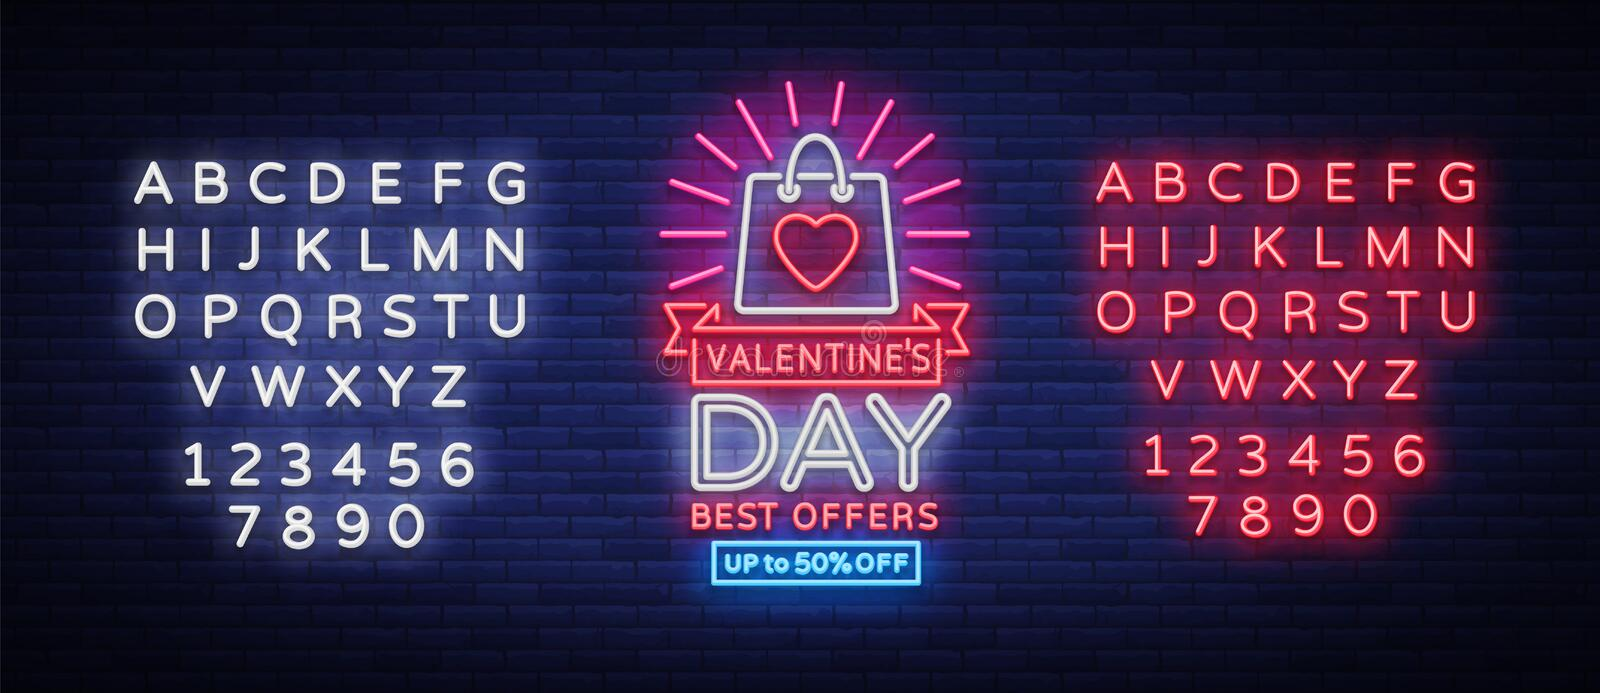 Valentines Day sale vector design template poster in neon style. Neon sign, neon banner with discounts, bright night vector illustration